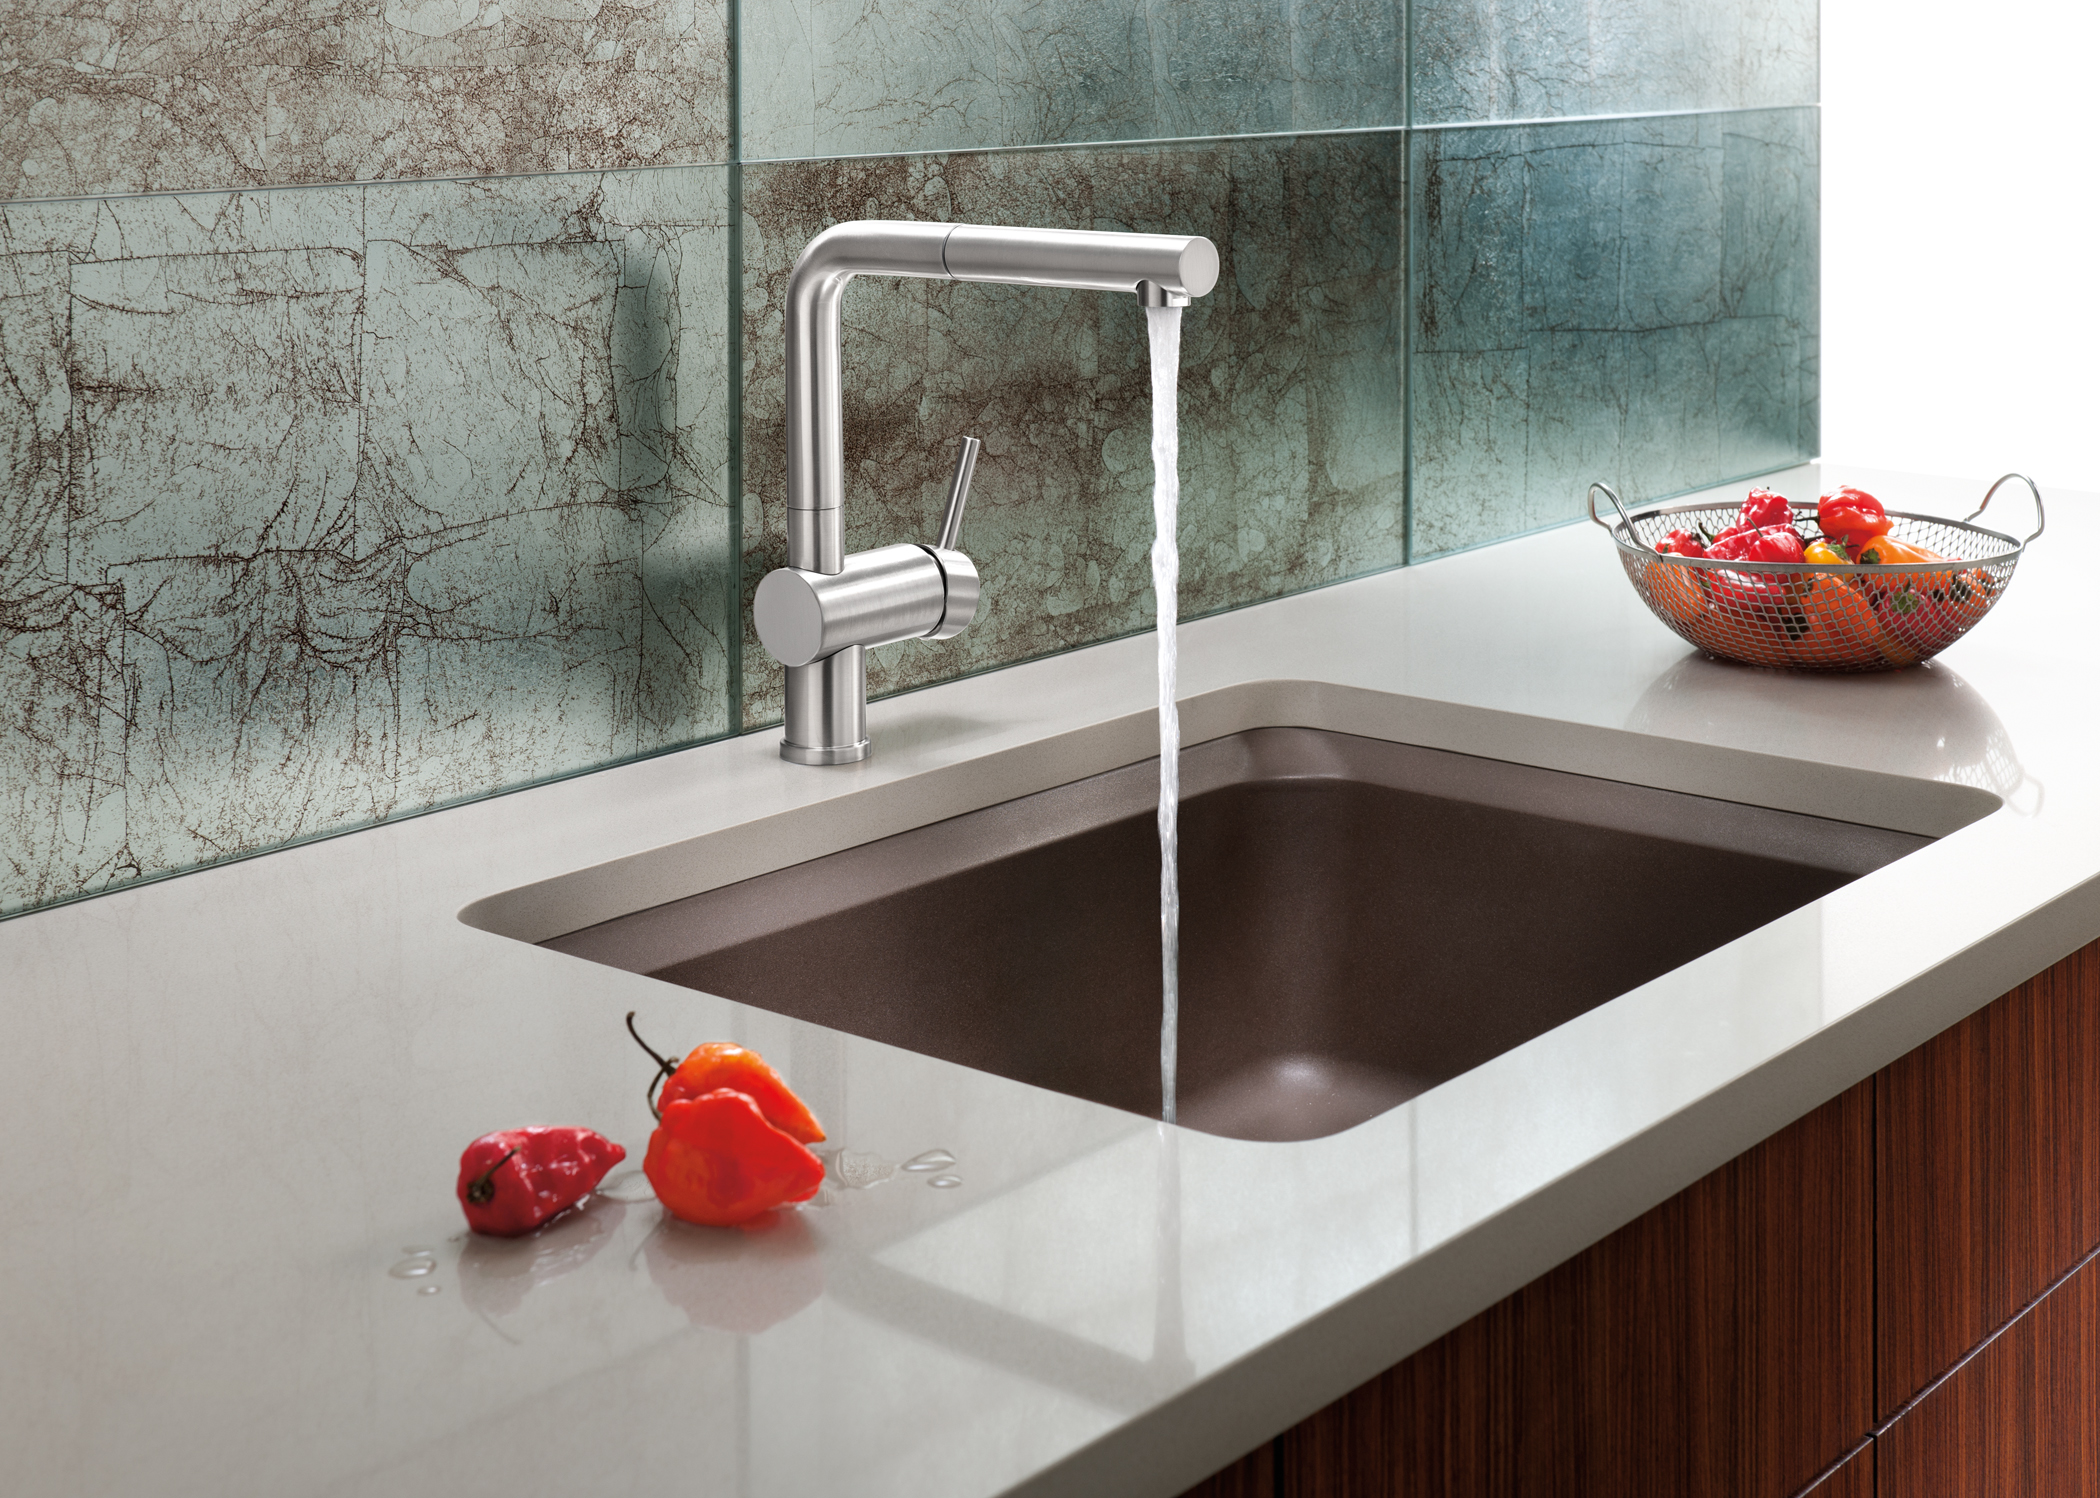 prweb blanco kitchen sinks BLANCO SILGRANIT II VISION Kitchen SinkThe new BLANCO SILGRANIT II VISION designer sink offers luxurious usability at great value without compromising